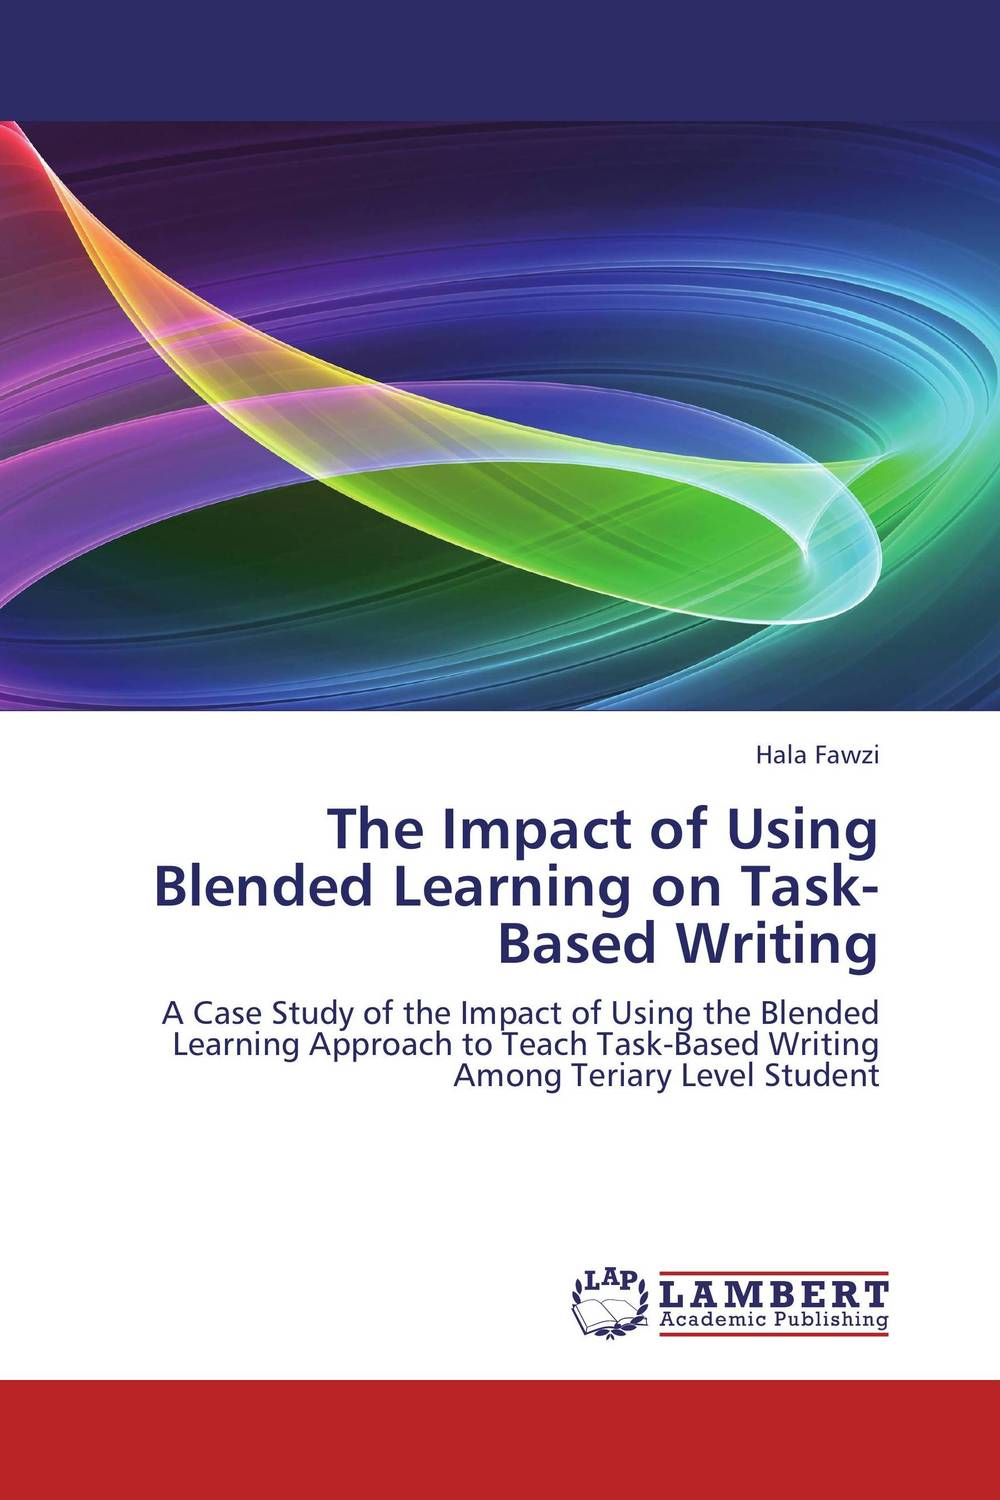 The Impact of Using Blended Learning on Task-Based Writing pso based evolutionary learning